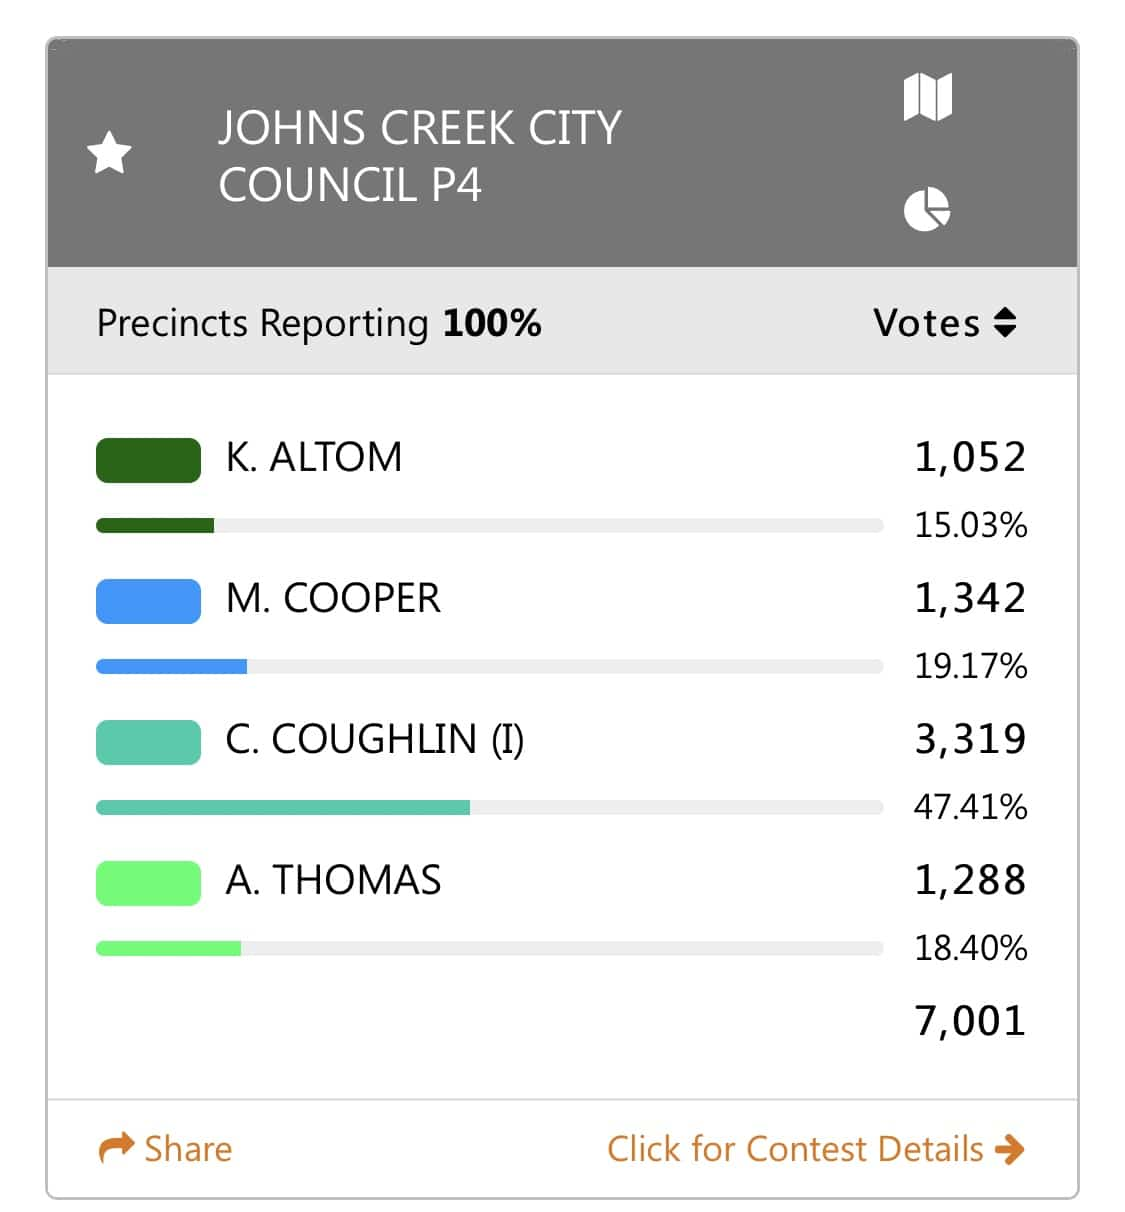 Johns Creek City Council Post 4 Results